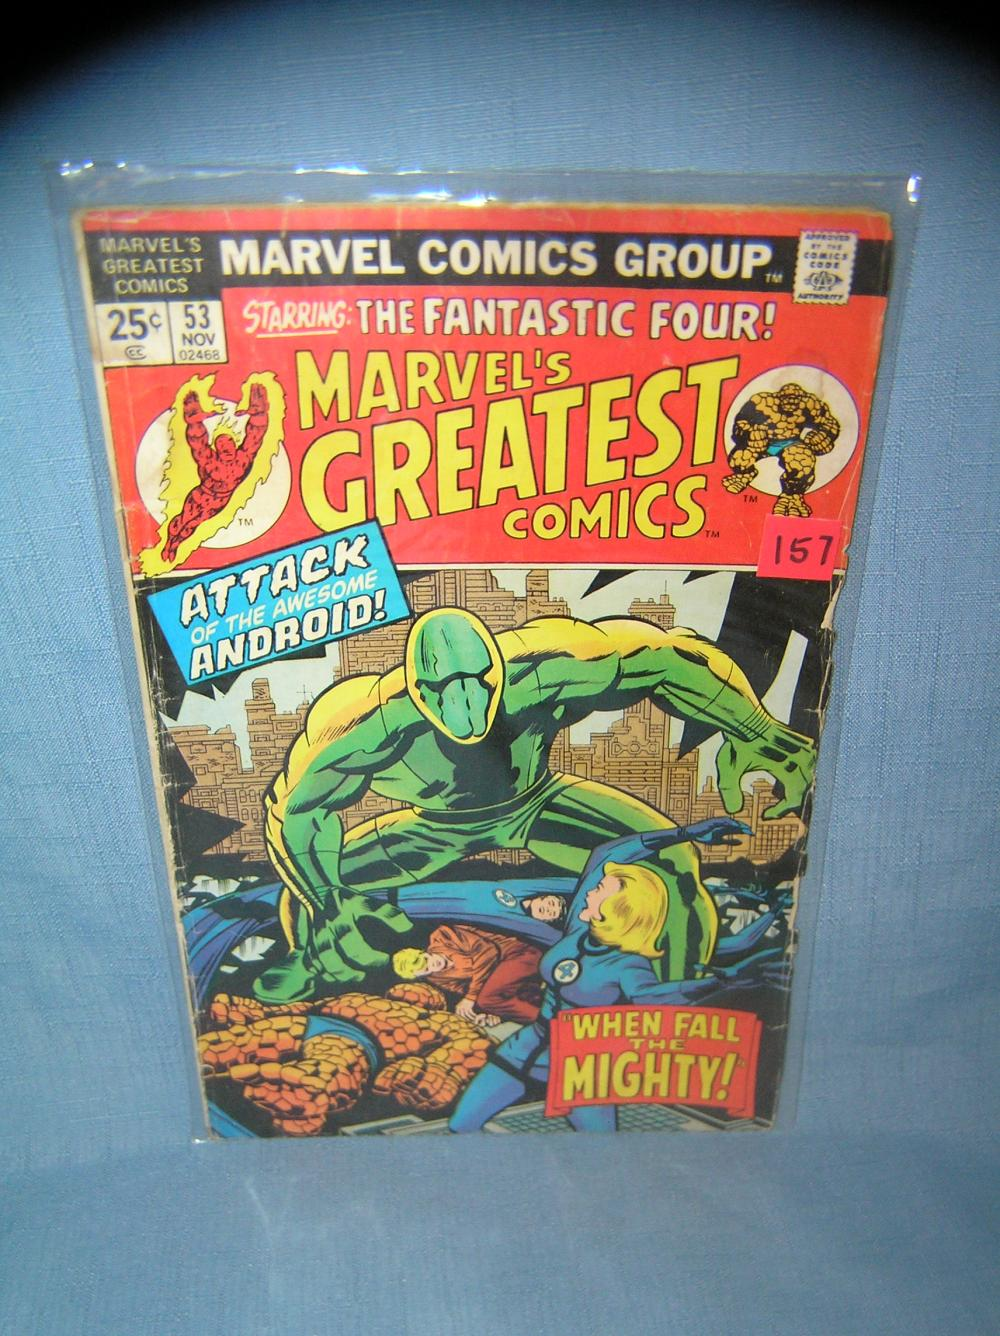 EARLY MARVEL'S GREATEST COMICS COMIC BOOK